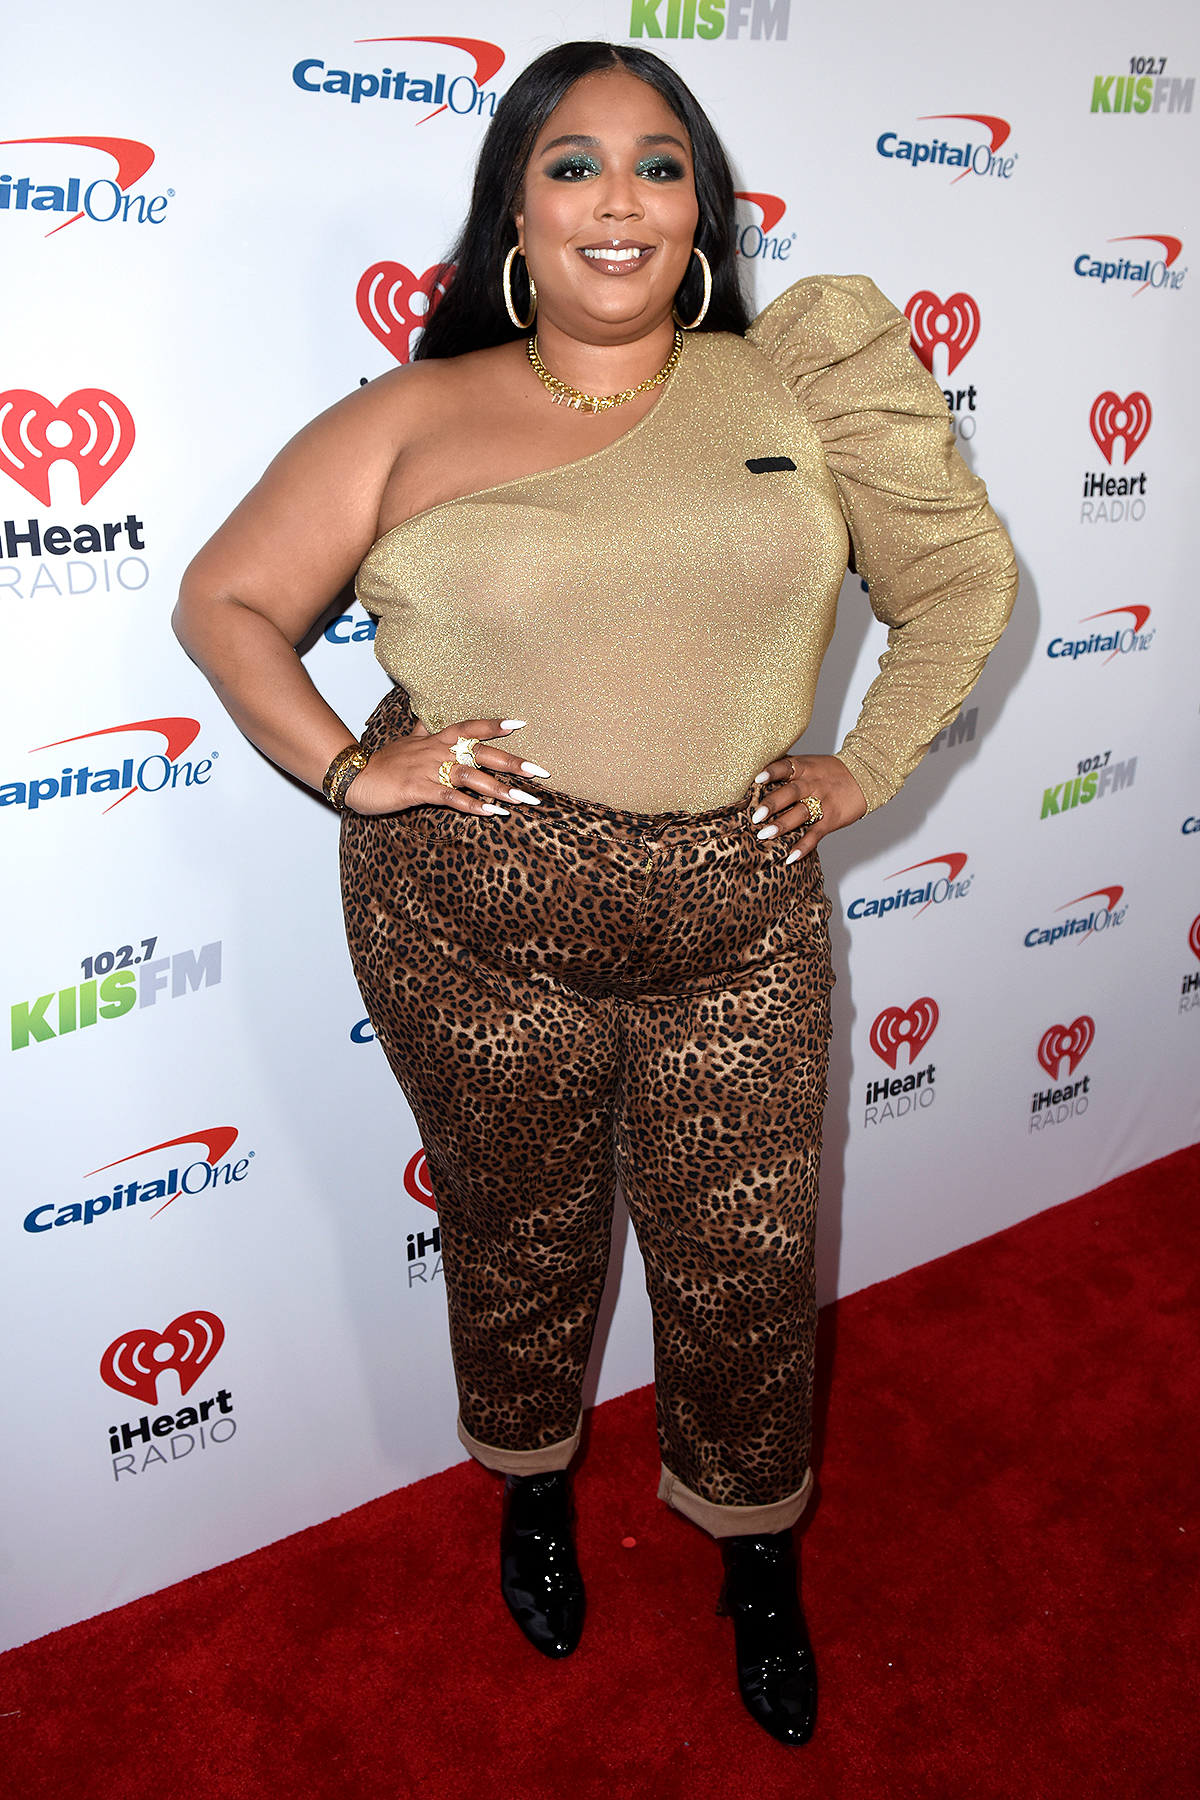 Lizzo attends 102.7 KIIS FM's Jingle Ball 2019 Presented by Capital One at the Forum on December 6, 2019